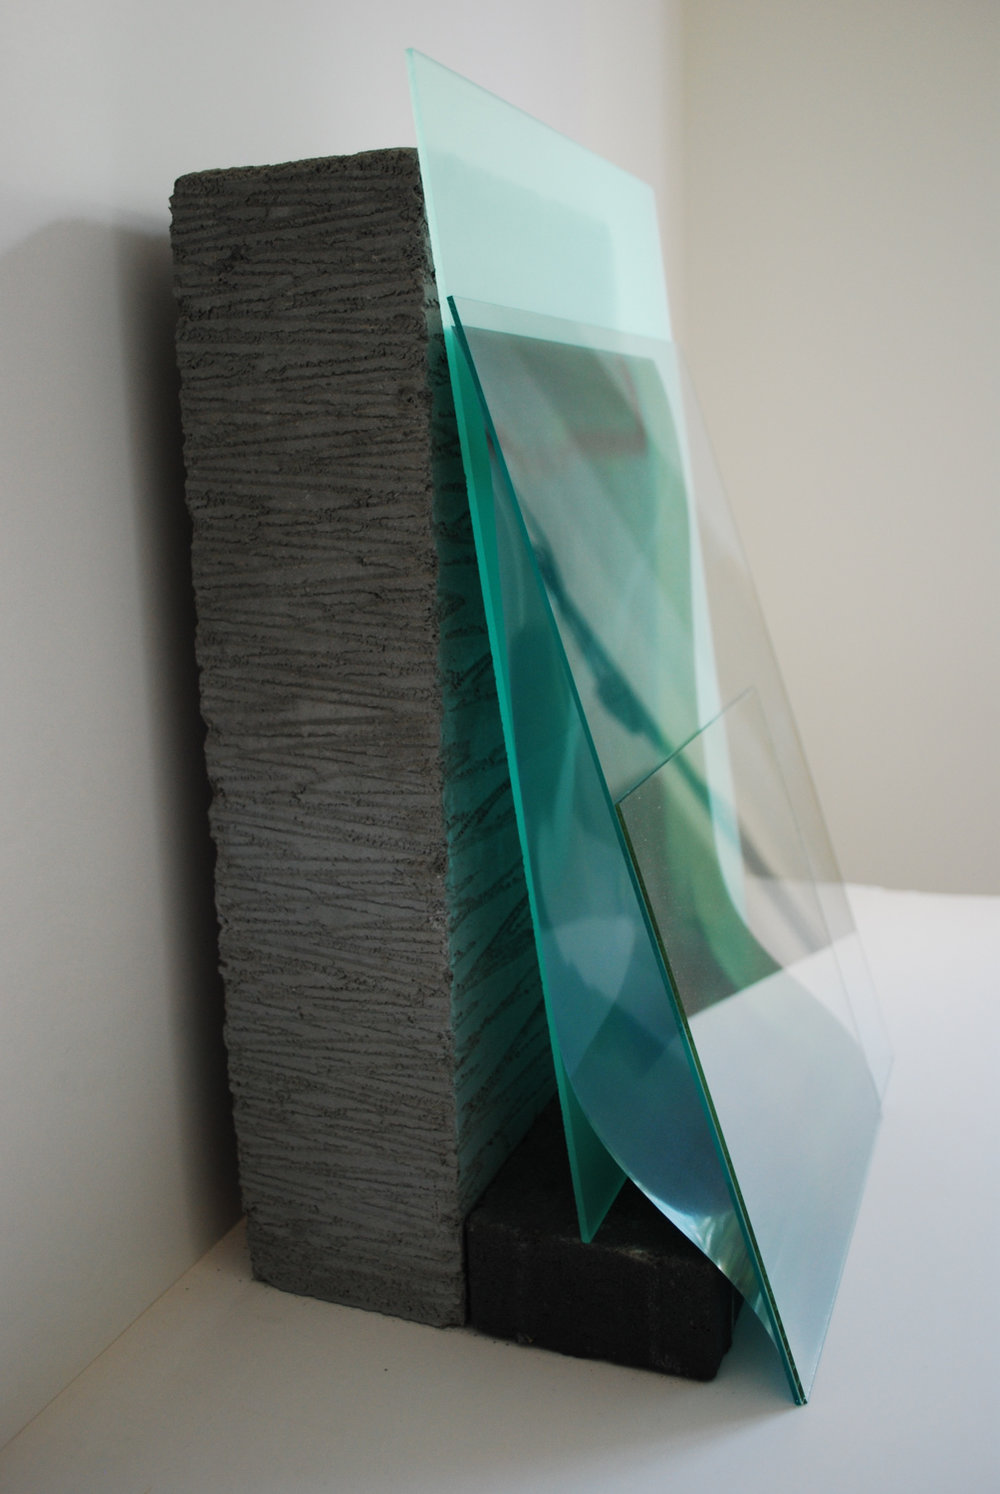 Holly Rowan Hesson, Fluid, 2015, concrete block, photograph on acetate, perspex, glass, brick, 31 x 47 x 27cm